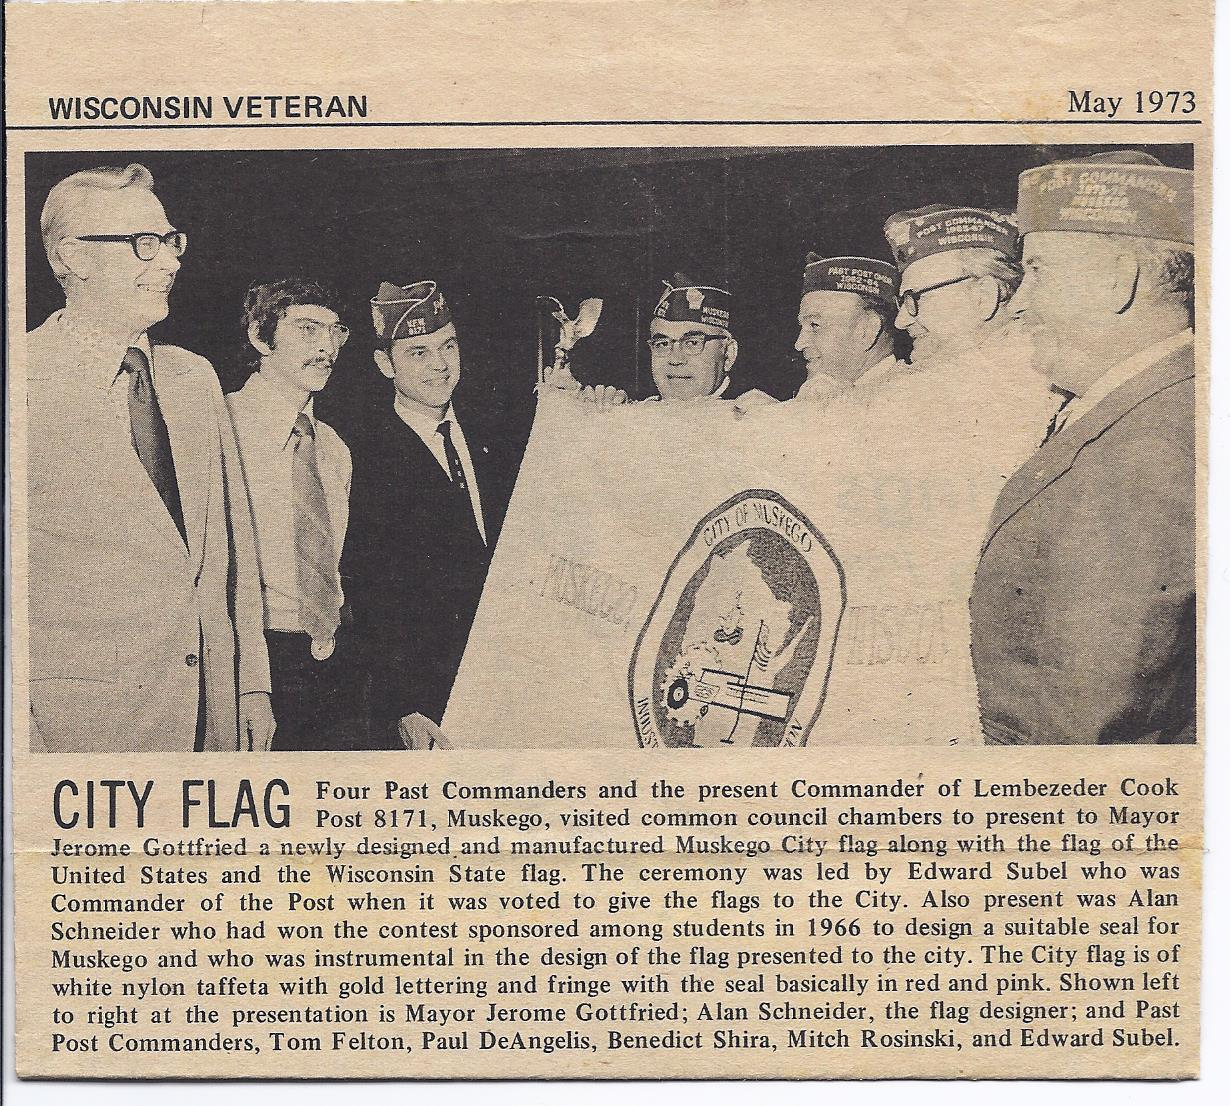 City Flag WI Veterans magazine 1973.jpeg